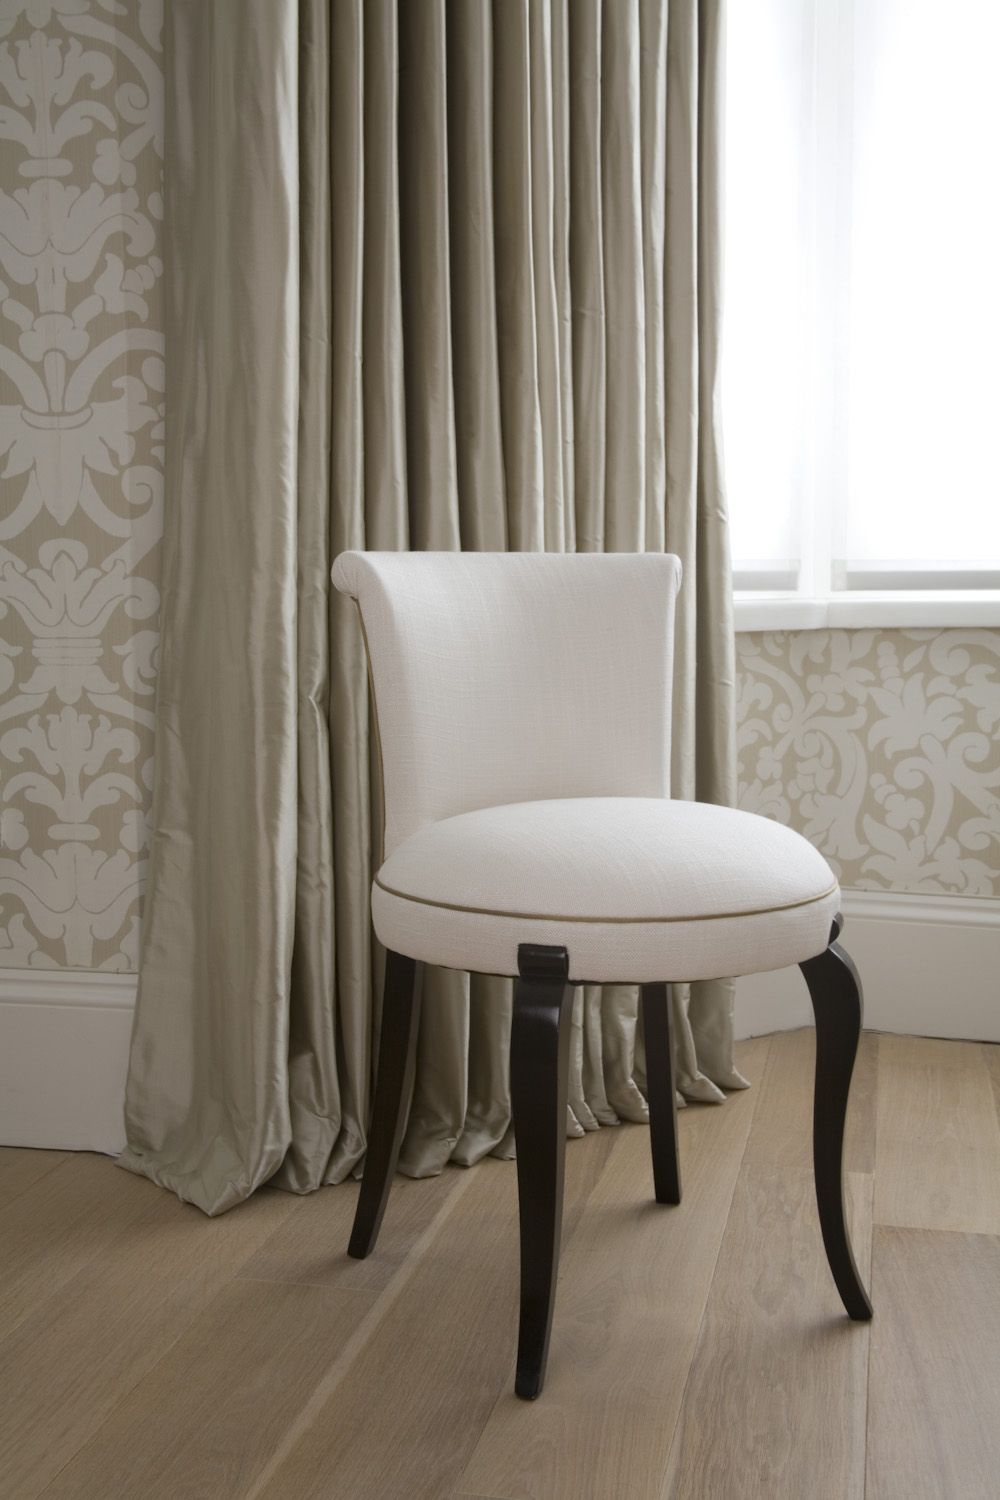 Photo Of Chairs For Bedrooms Chairs For Bedrooms Images HD9K22